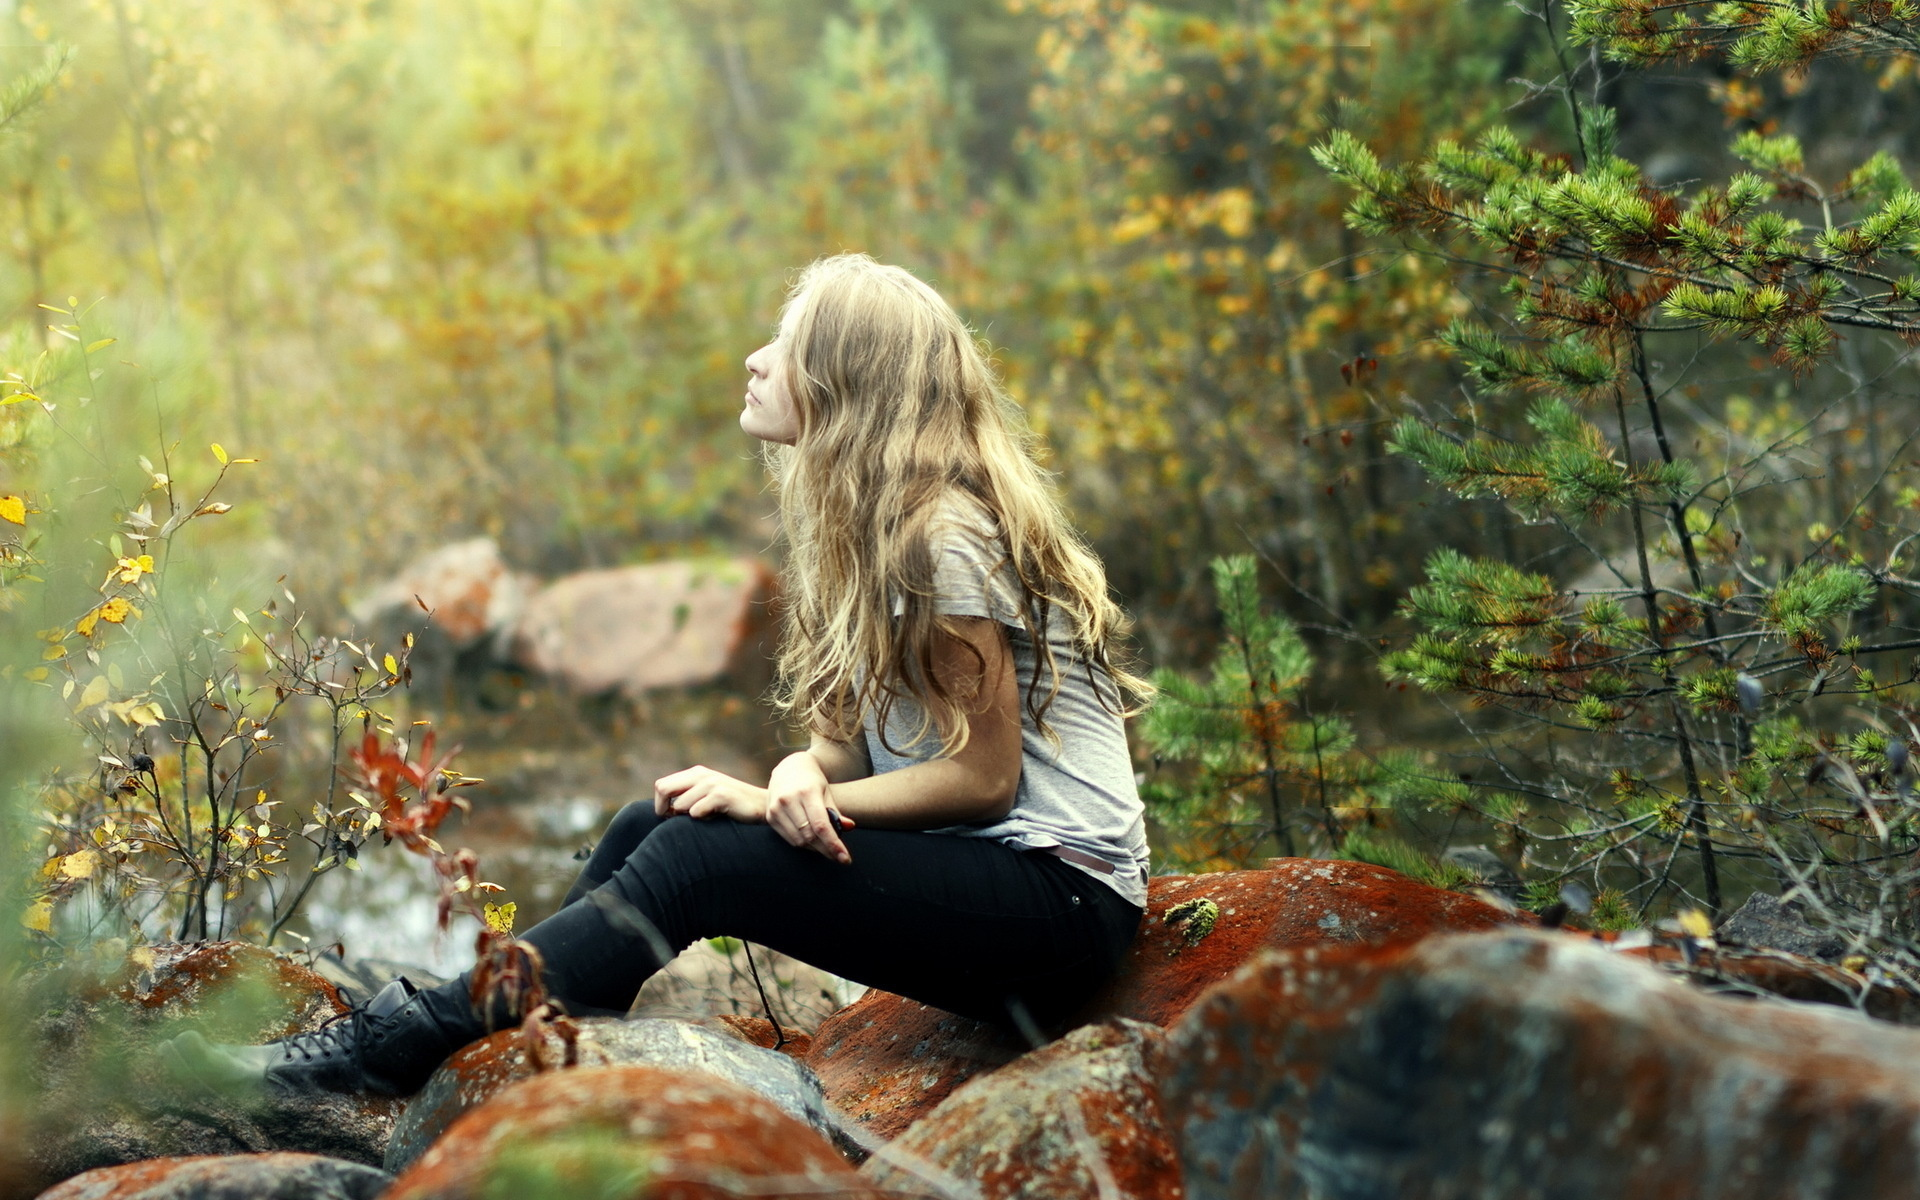 Cute Small Girl Wallpapers For Facebook Mood Emotion Alone Trees Forests Nature Blonde Photography